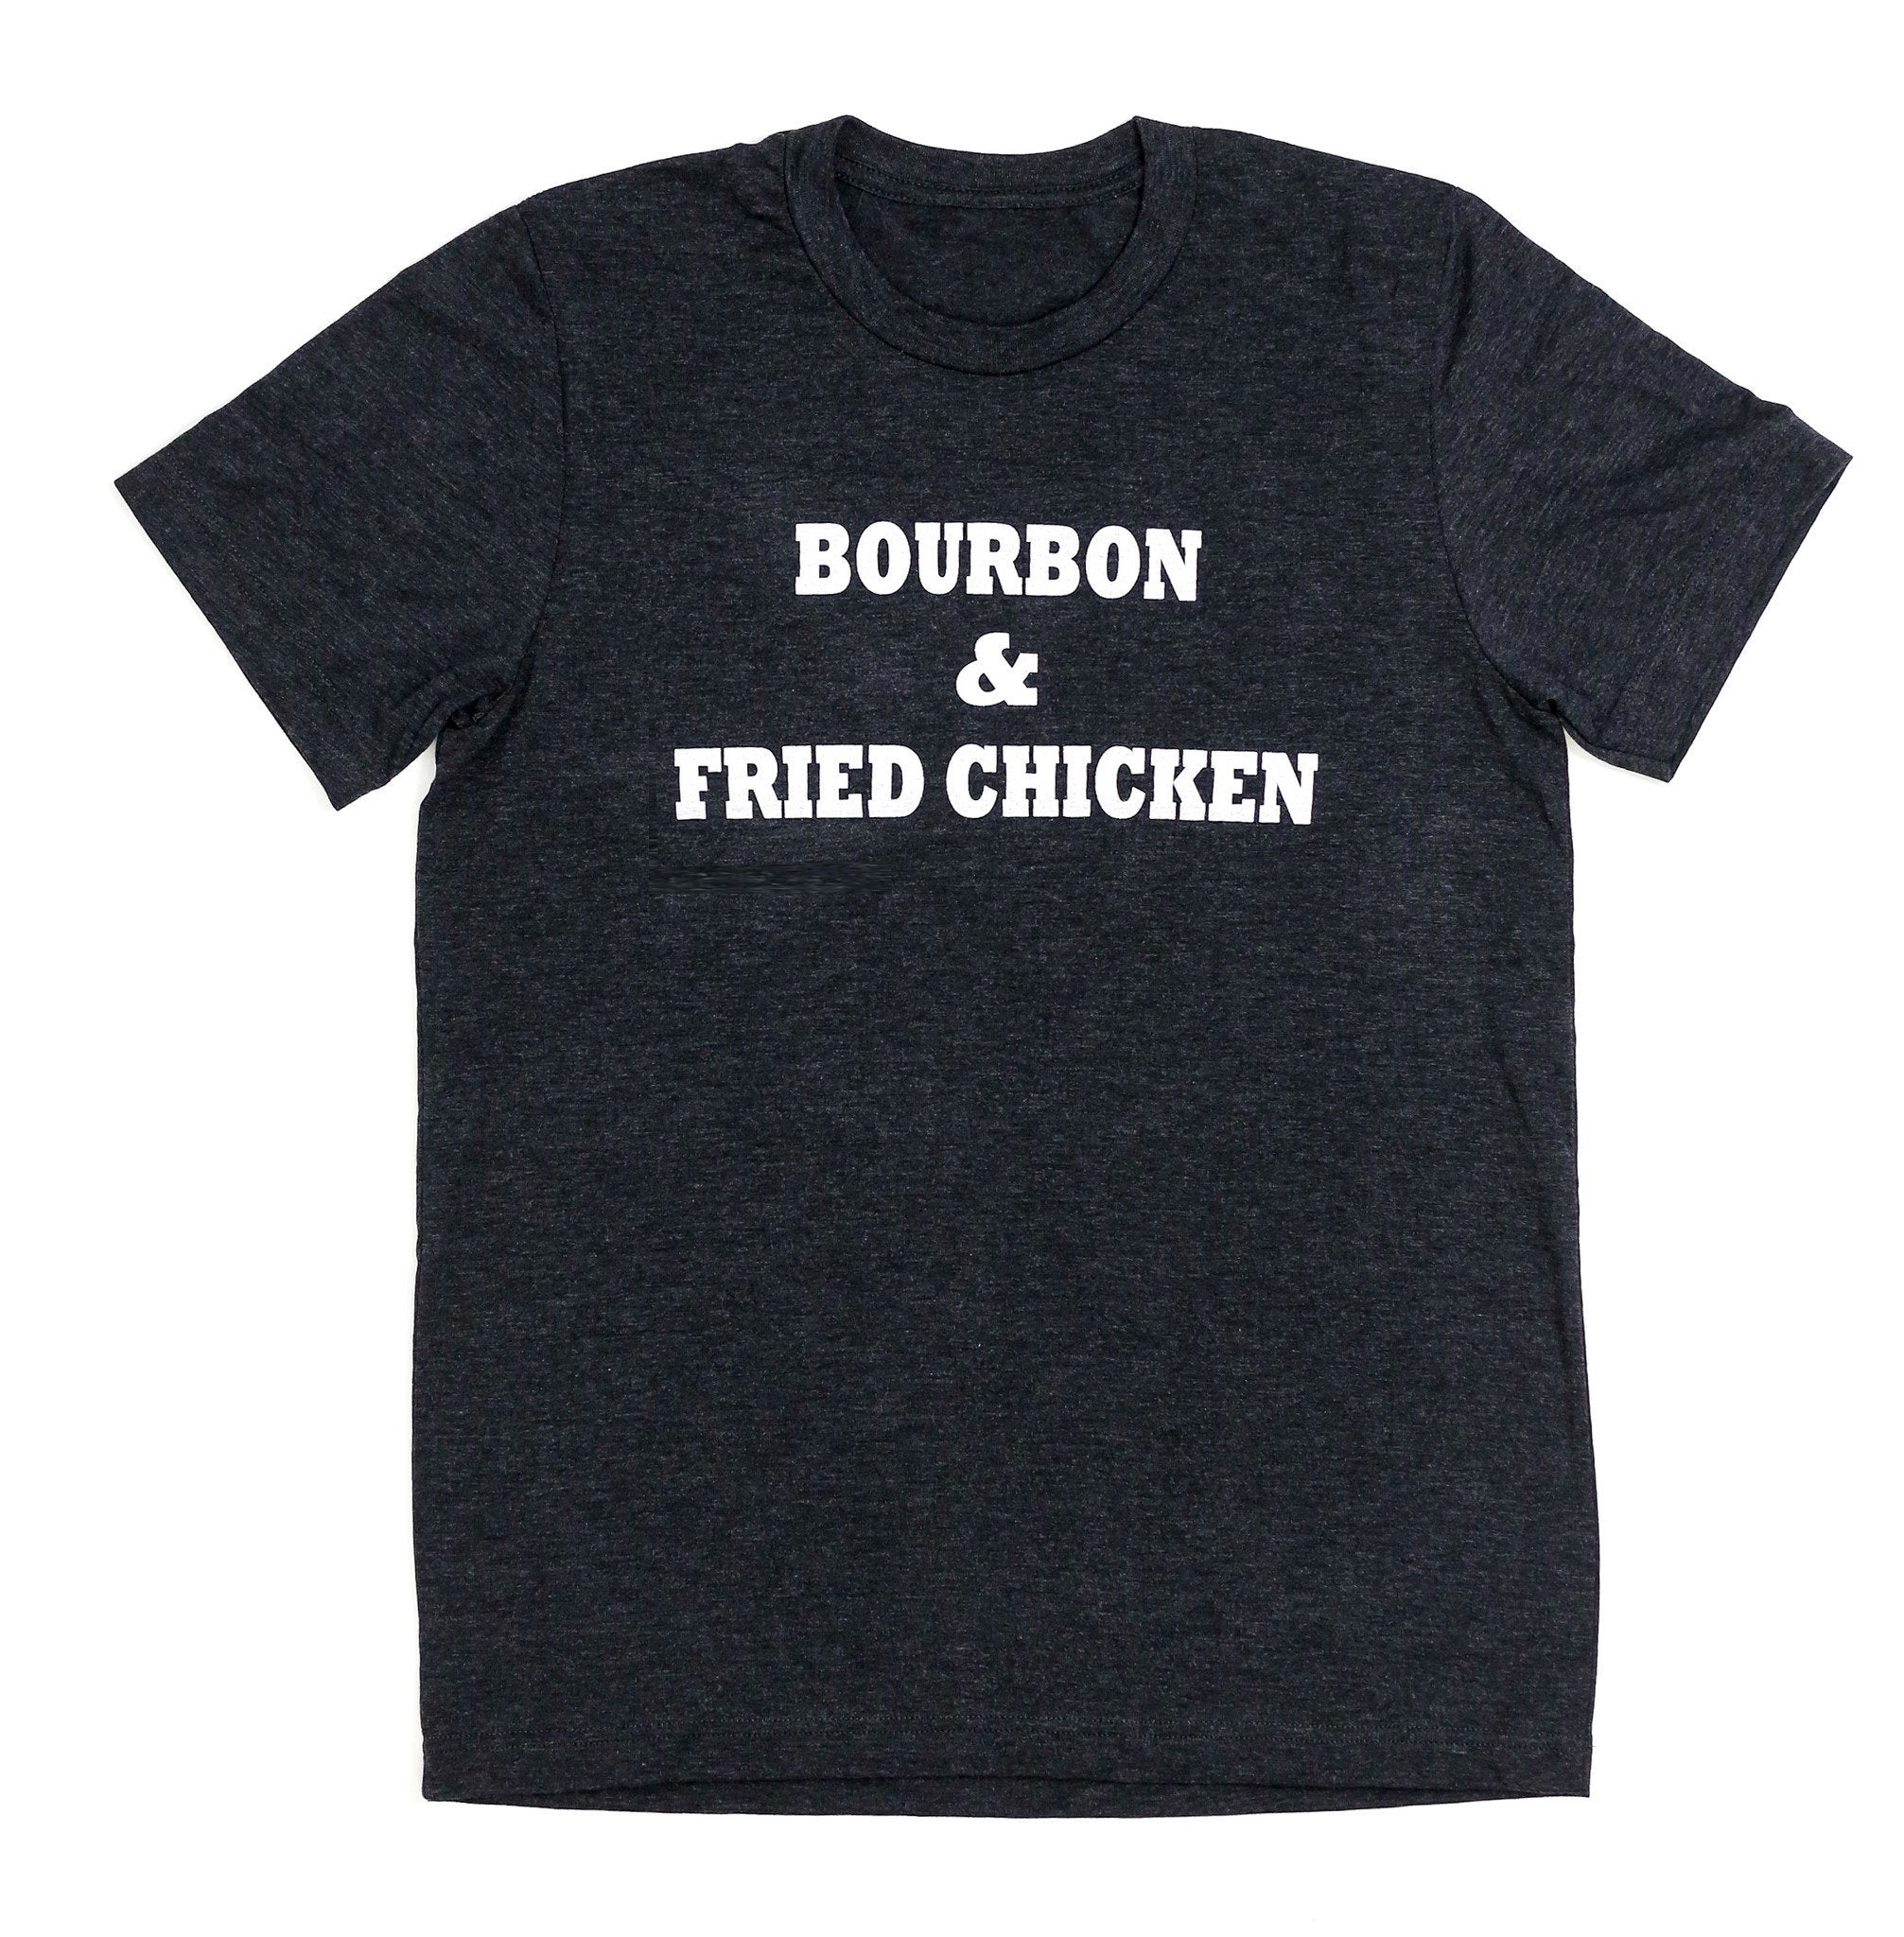 Bourbon & Fried Chicken (unisex)